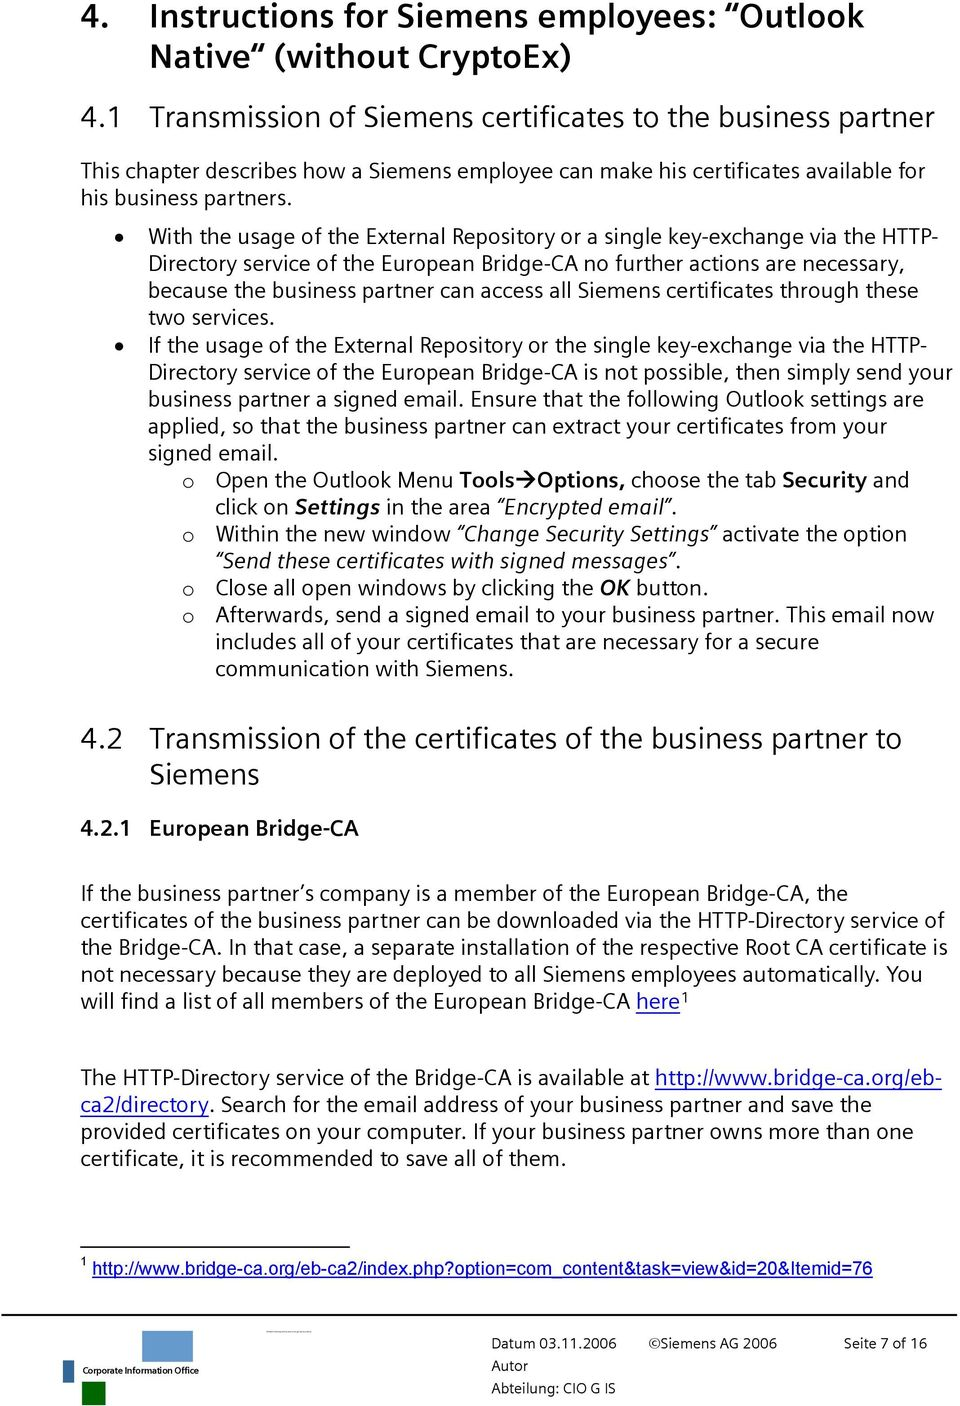 With the usage of the External Repository or a single key-exchange via the HTTP- Directory service of the European Bridge-CA no further actions are necessary, because the business partner can access